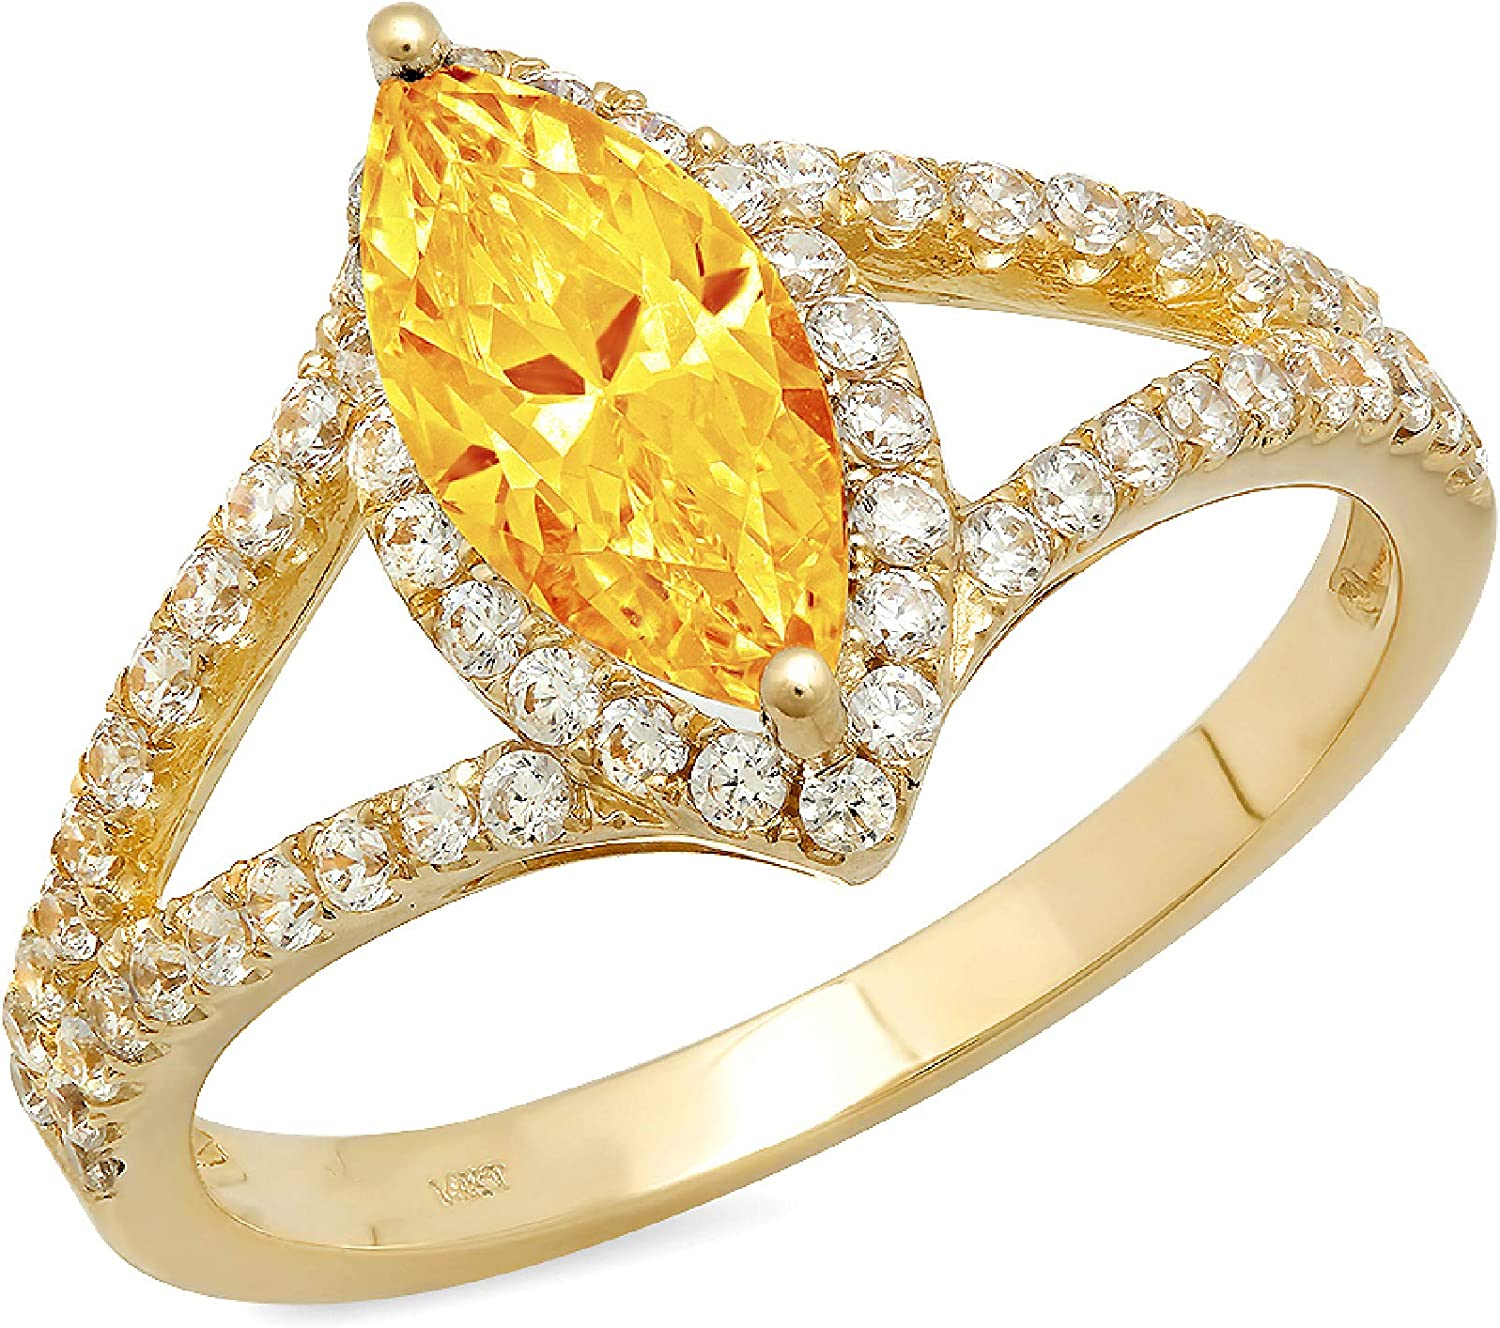 1.14ct Marquise Cut Solitaire split shank Halo Natural Yellow Citrine Gemstone Ideal VVS1 Engagement Promise Statement Anniversary Bridal Wedding ring Solid 14k Yellow Gold